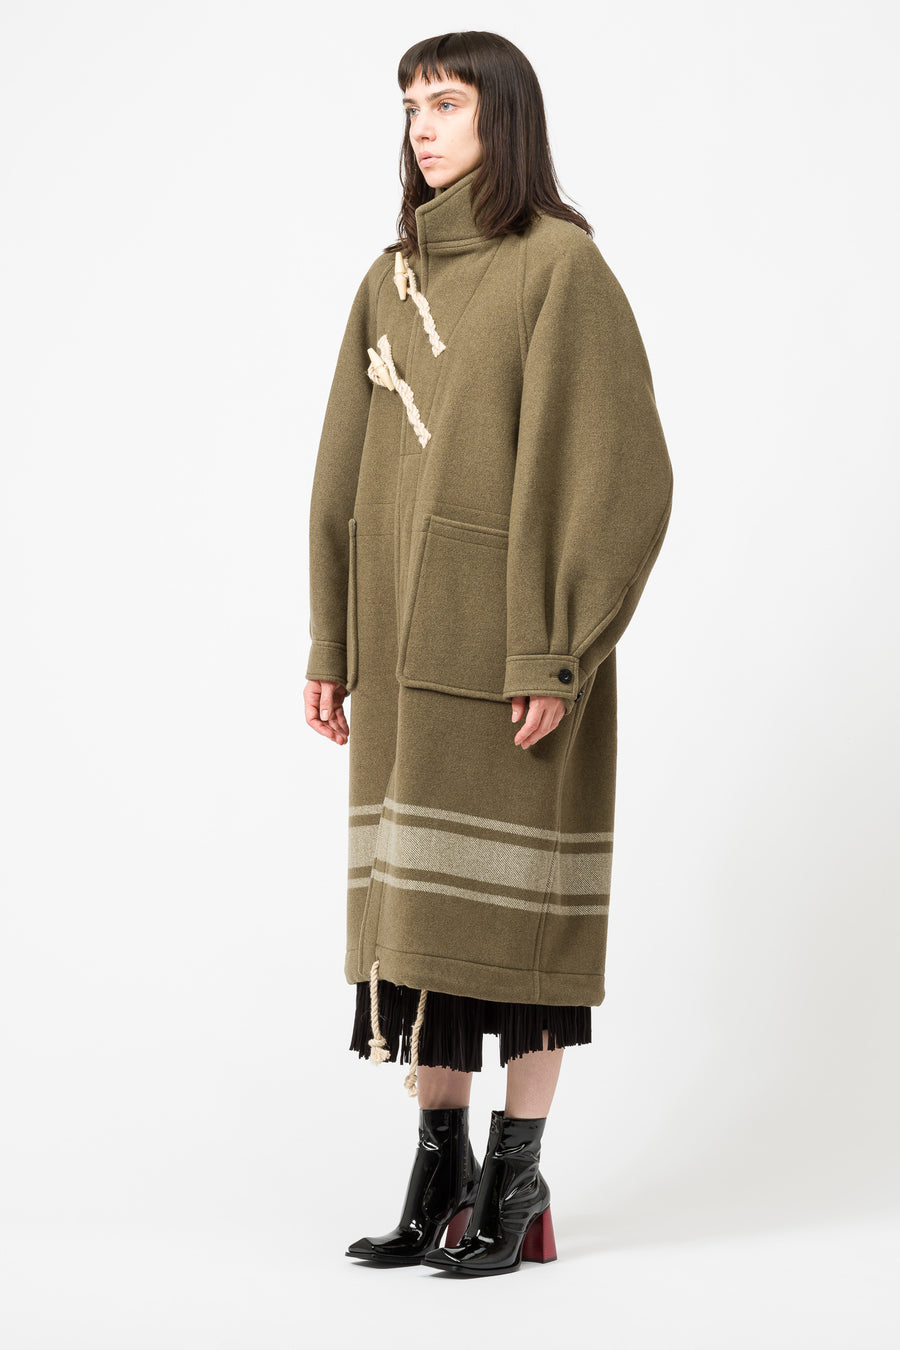 Hyke Rope Close Wool Coat in Olive Drab - Notre